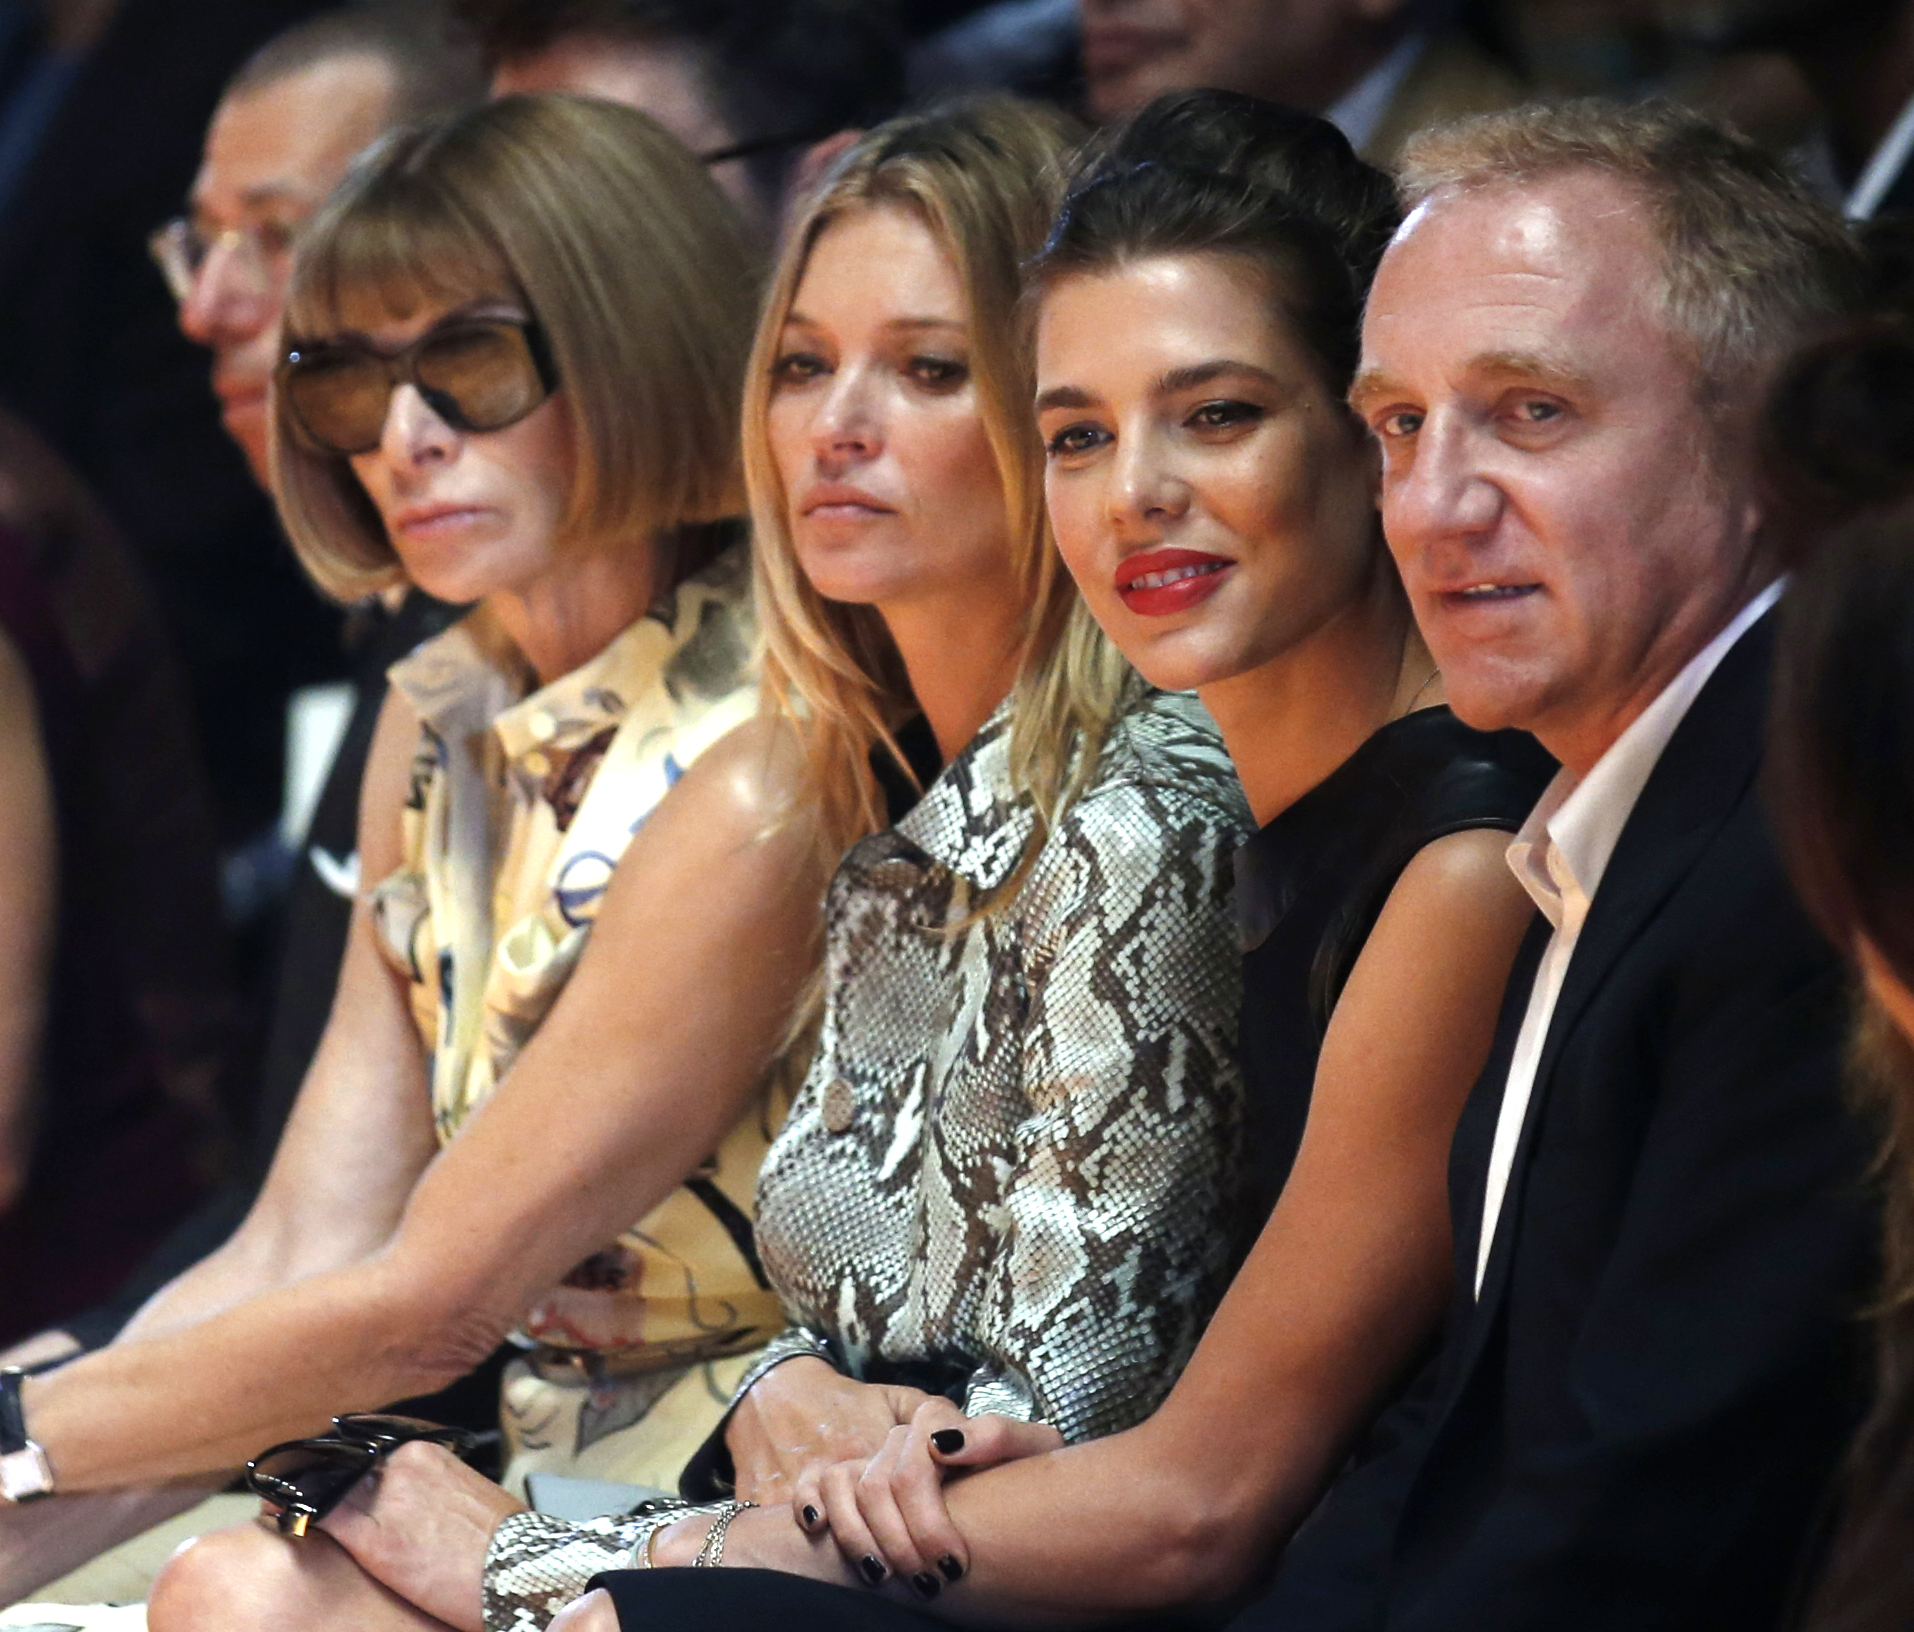 Anna Wintour, model Kate Moss, Princess Charlotte Casiraghi, and French businessman Francois Pinault attend Gucciwomen's spring-summer show, part of the Milan Fashion Week, unveiled in Milan, Italy, Wednesday, Sept. 17, 2014.